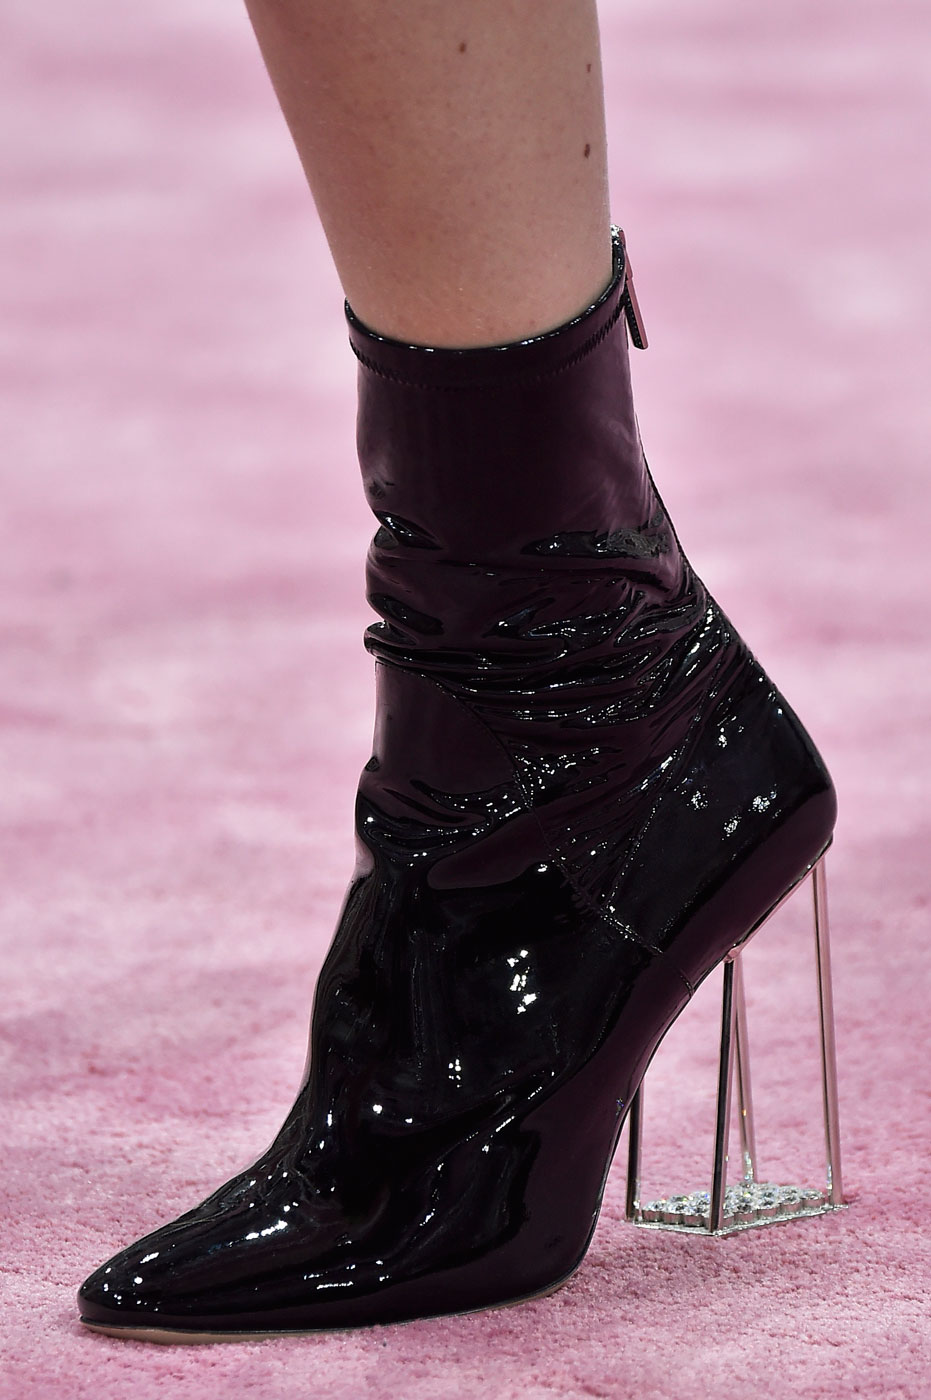 Christian-Dior-fashion-runway-show-close-ups-haute-couture-paris-spring-summer-2015-the-impression-161